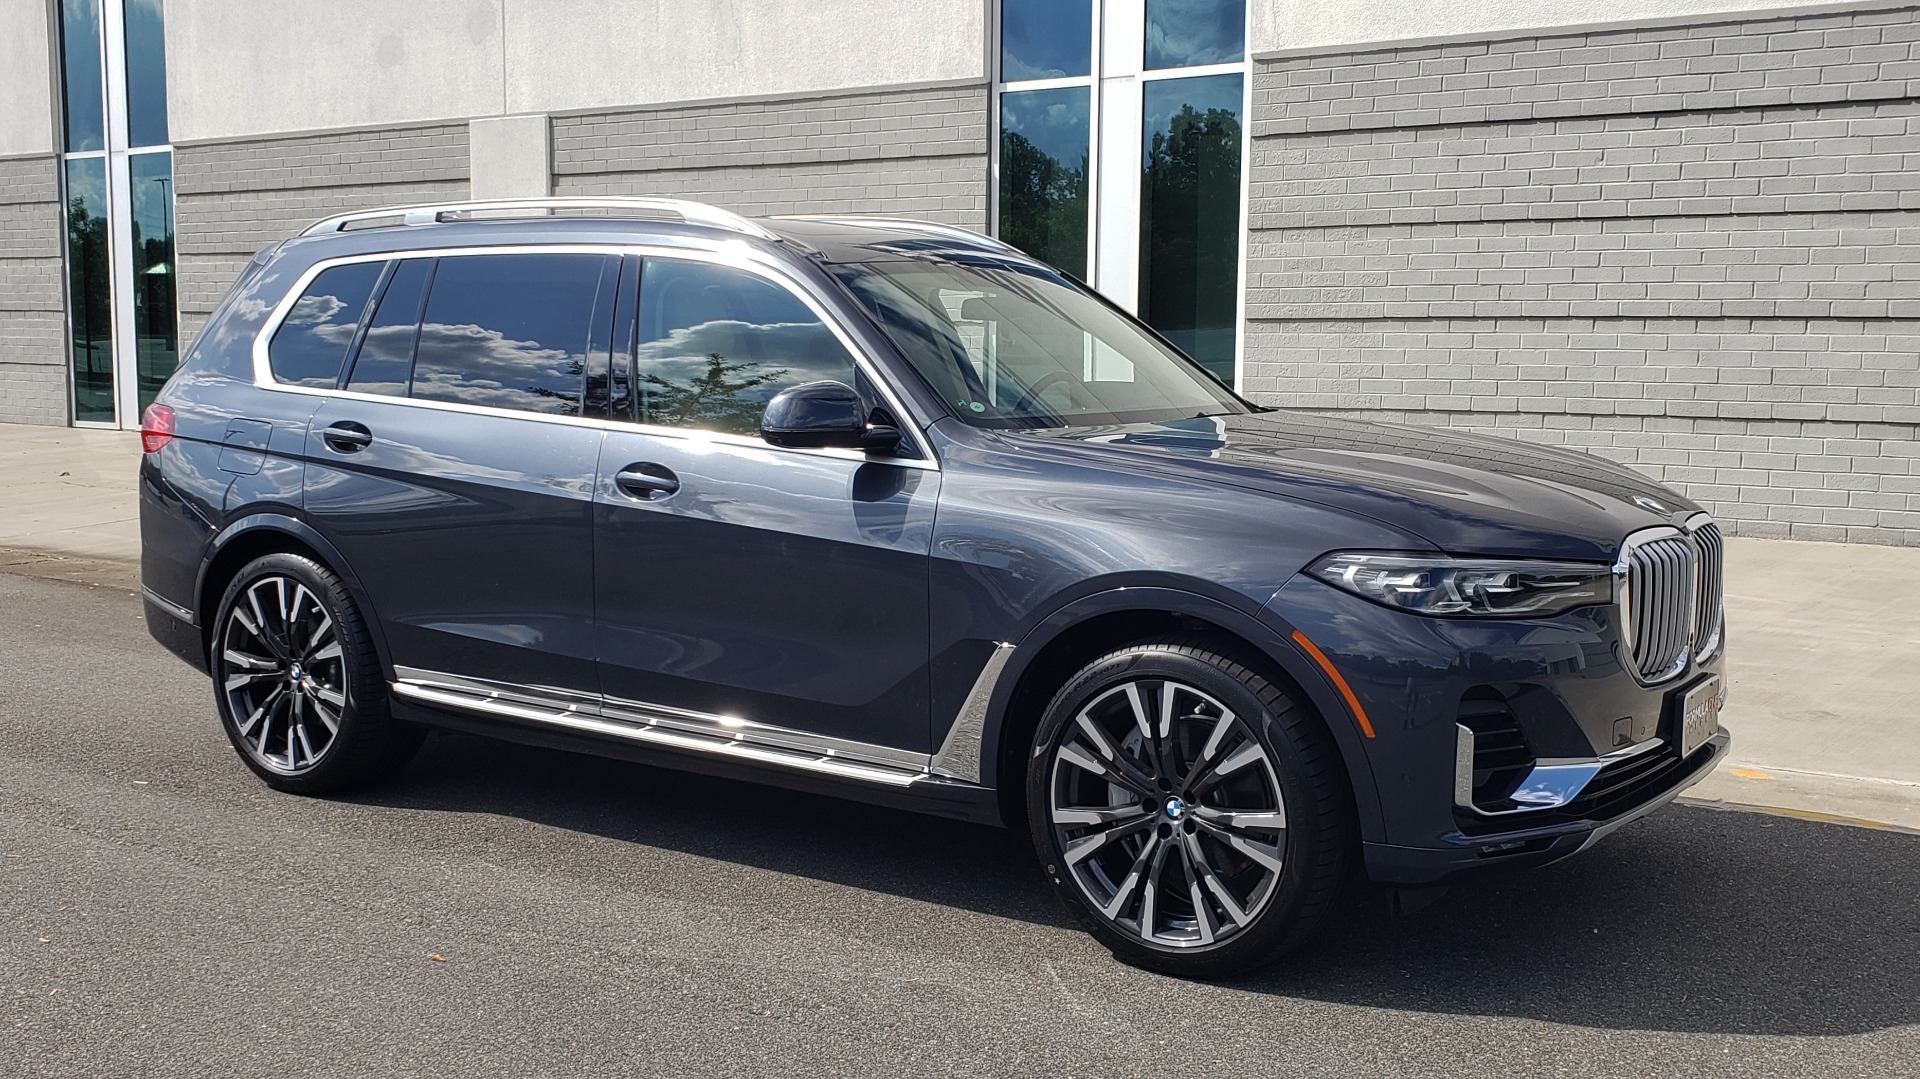 Used 2019 BMW X7 XDRIVE40I PREMIUM / LUXURY / COLD WEATHER / PARK ASST / PANORAMIC SKY / TOW for sale $75,999 at Formula Imports in Charlotte NC 28227 9